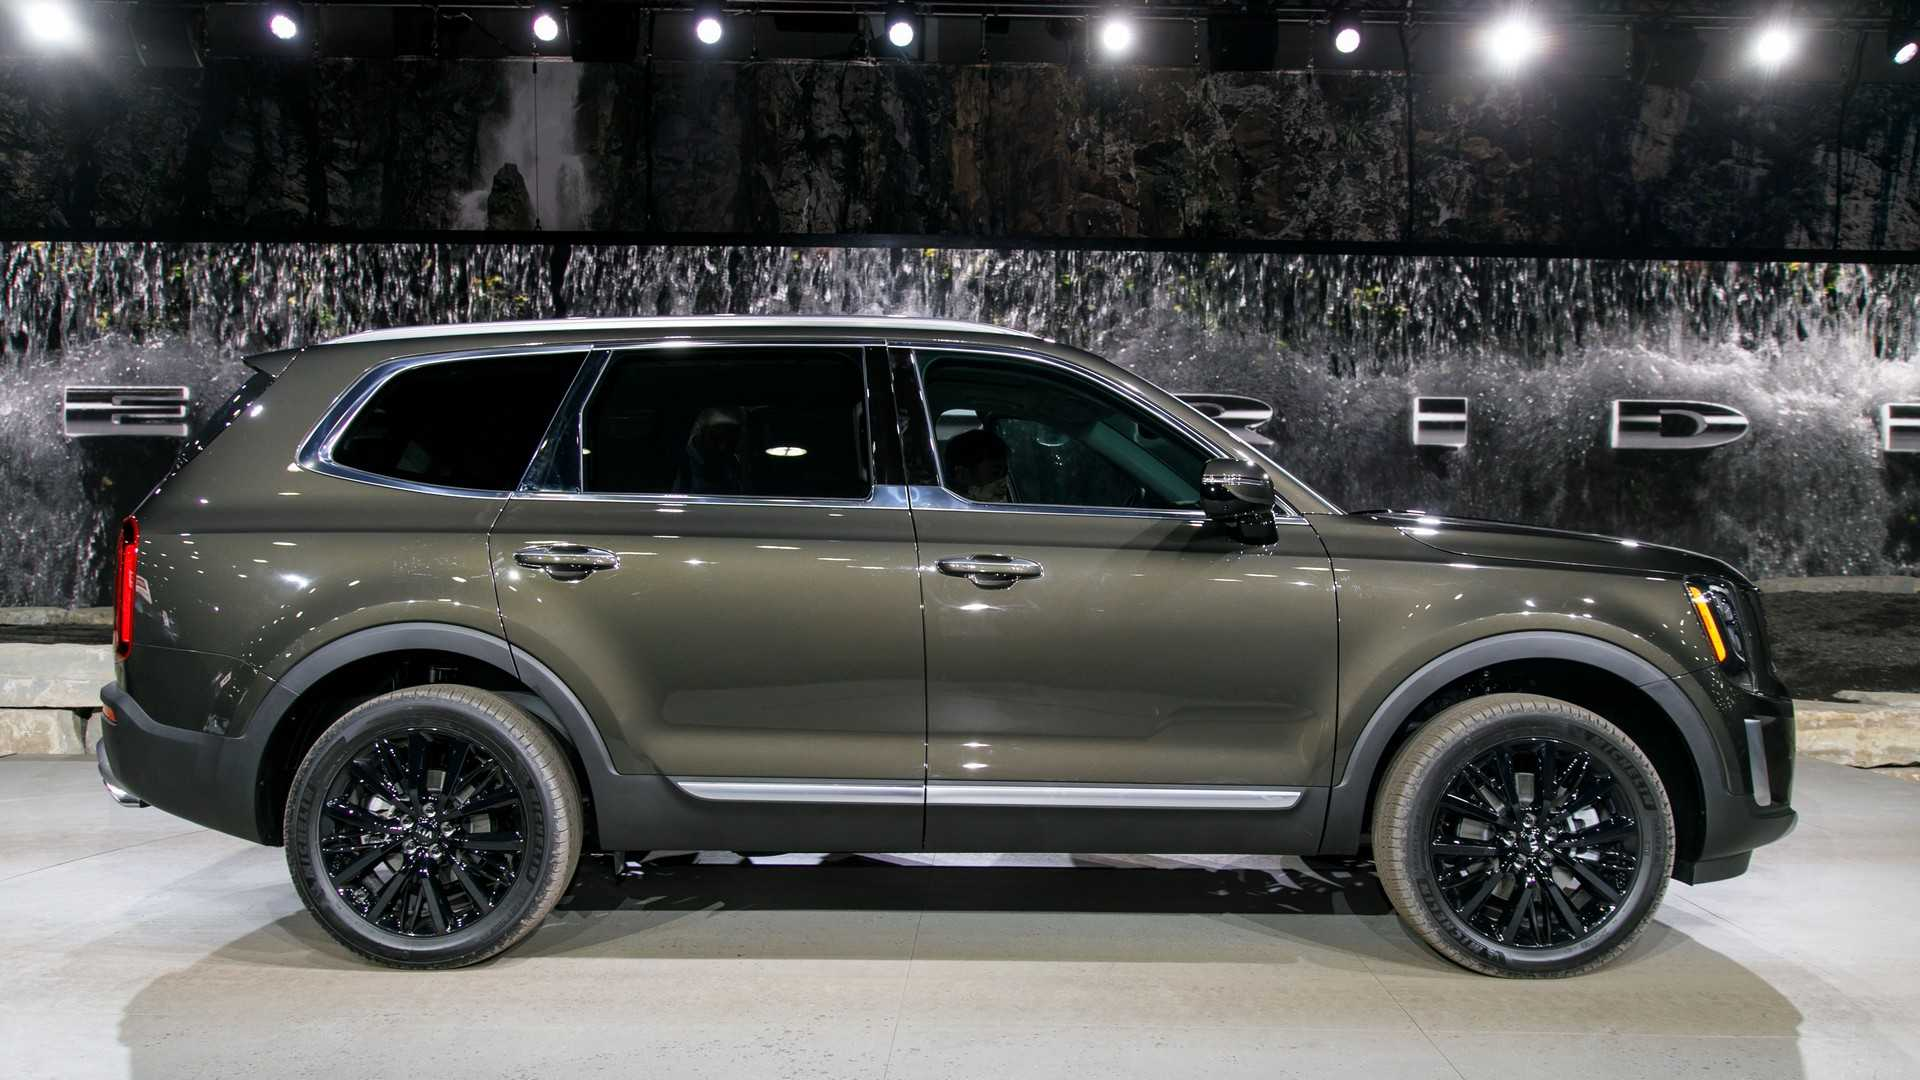 15 All New 2020 Kia Telluride Build And Price Ratings with 2020 Kia Telluride Build And Price